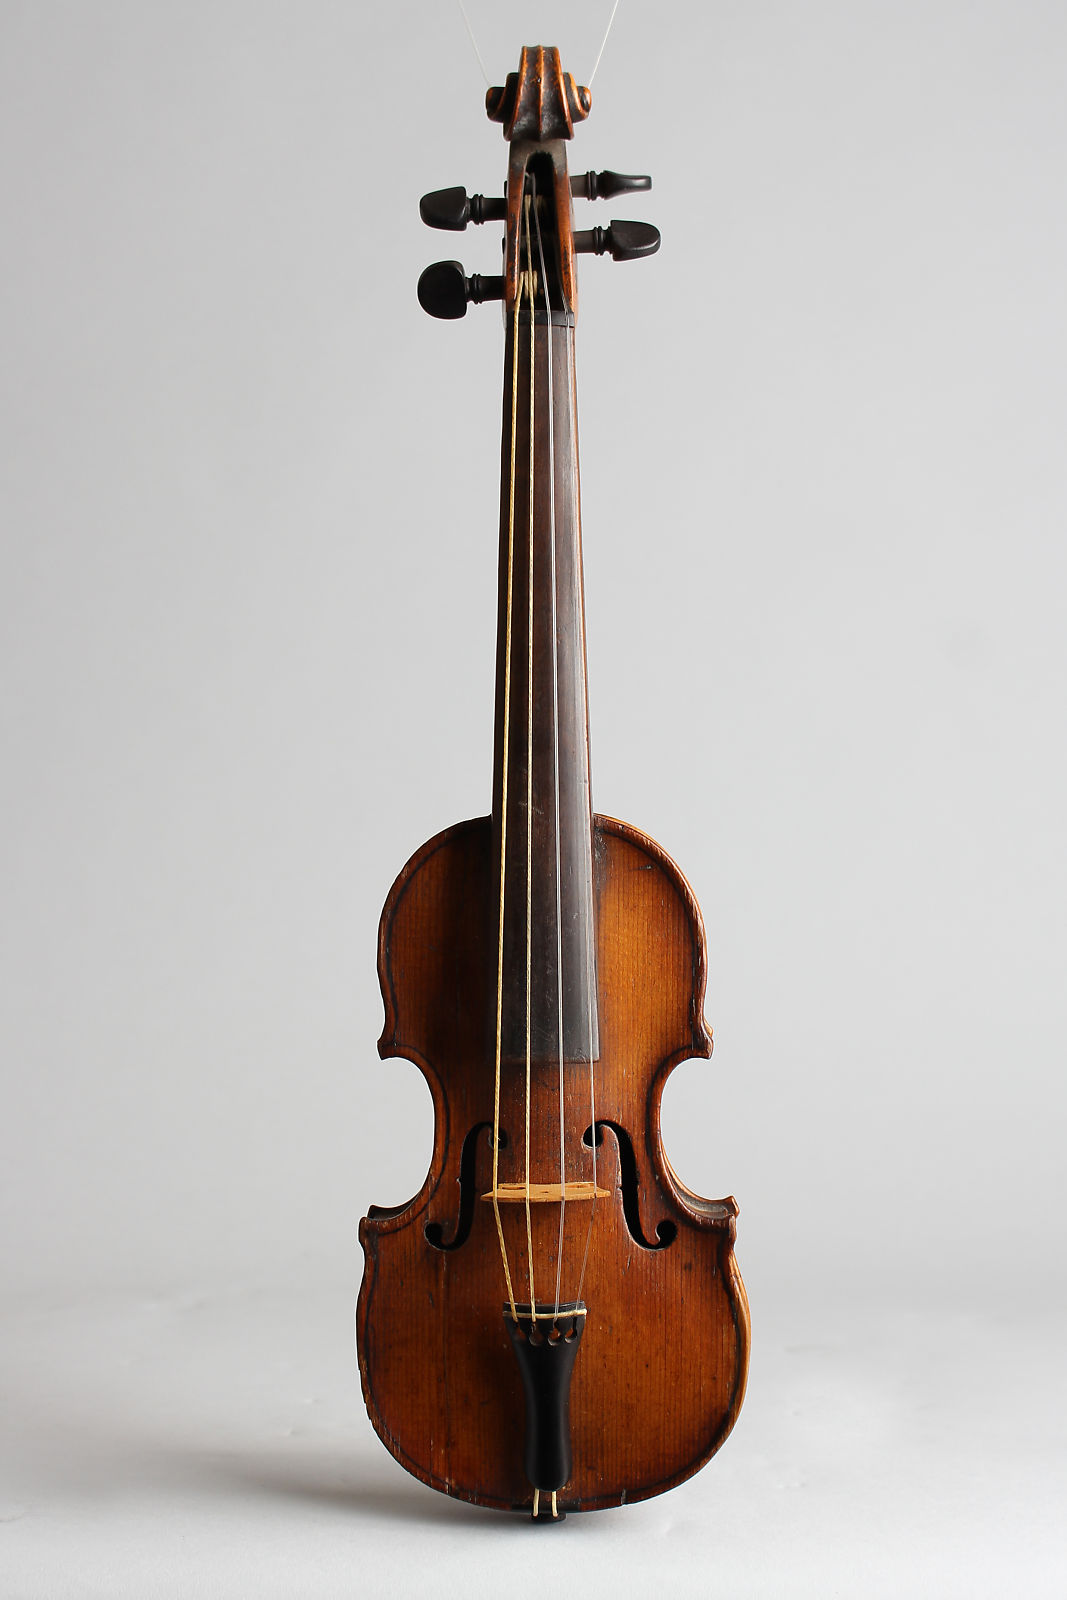 Pouchette Violin, molded plastic hard shell case.